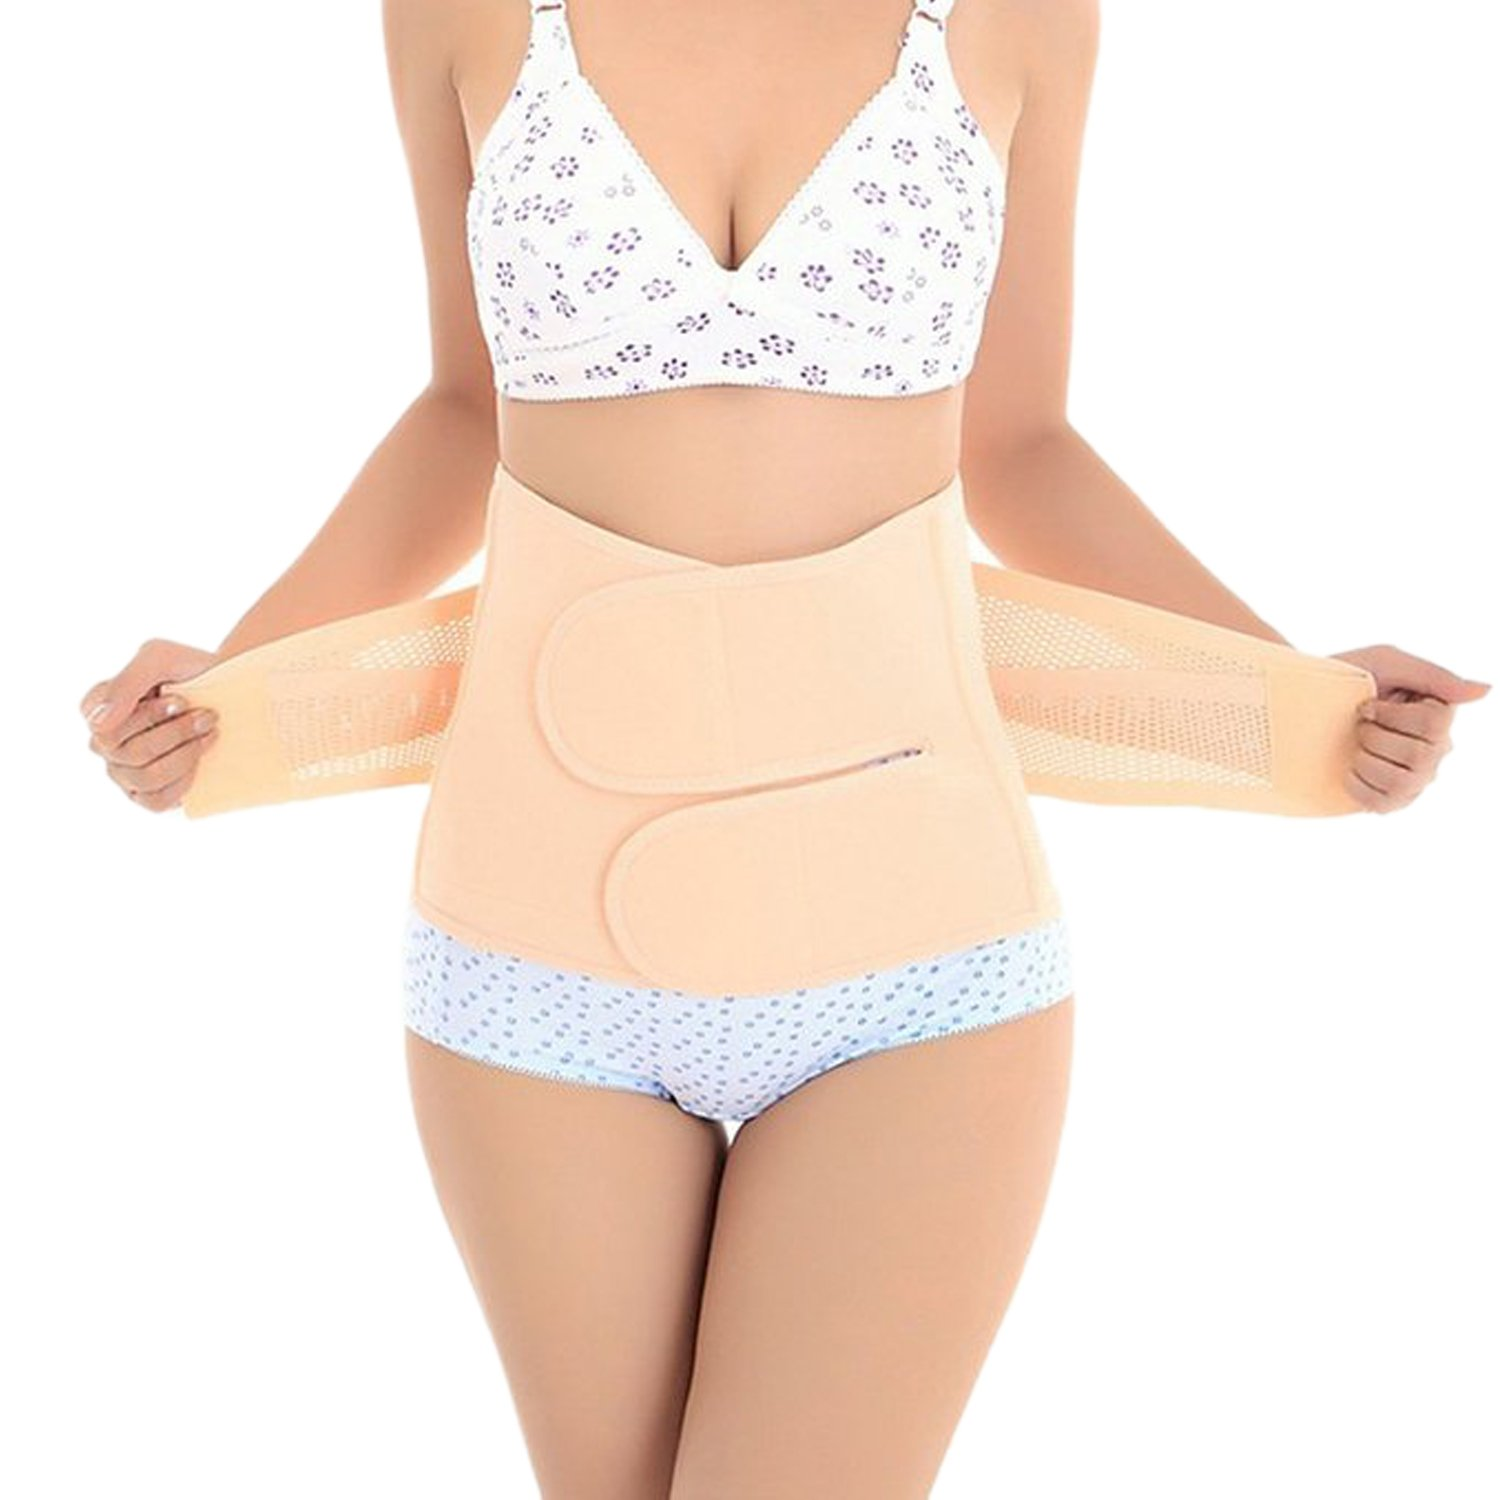 Trendyline Women Postpartum Girdle Corset Recovery Belly Band Wrap Belt, Medium,Beige Nude Medium